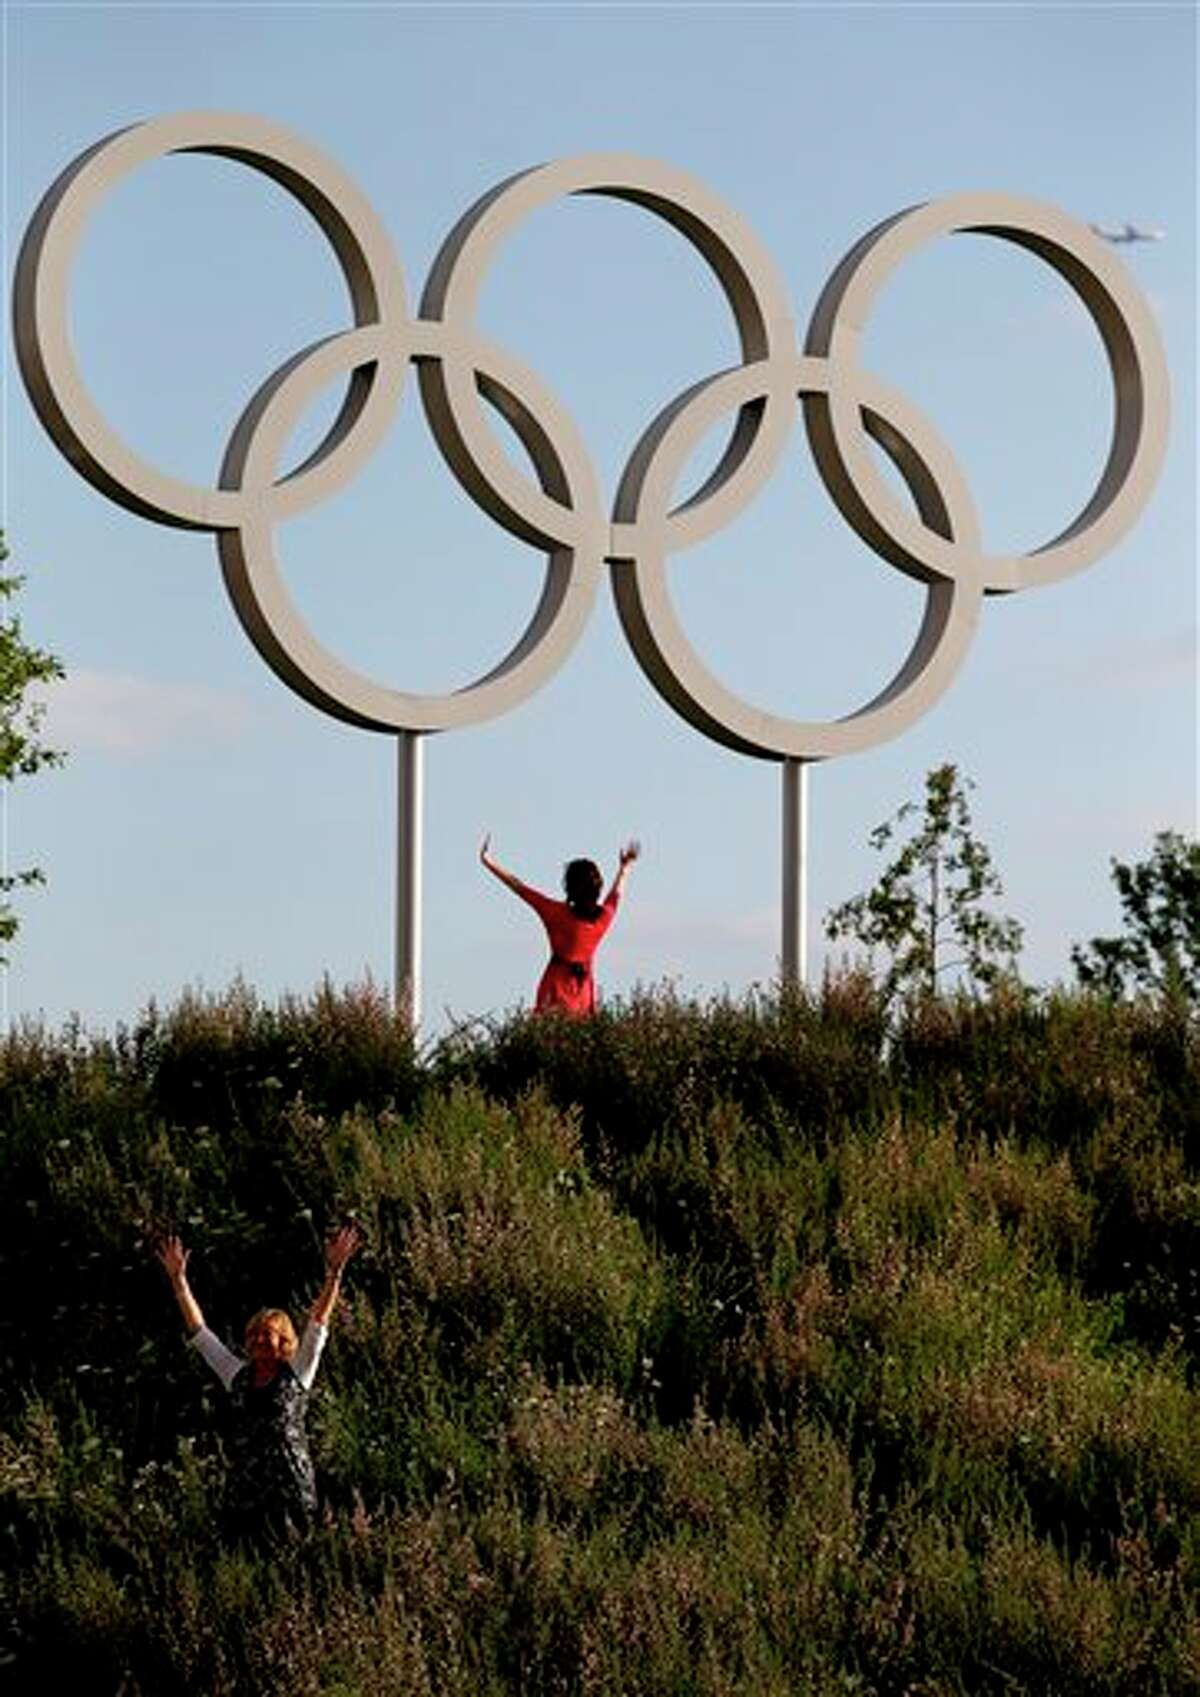 Mandy Burrell, bottom left, poses near the Olympic rings at the Olympic Park during the 2012 Summer Olympics, Saturday, July 28, 2012, in London. (AP Photo/Jae C. Hong)